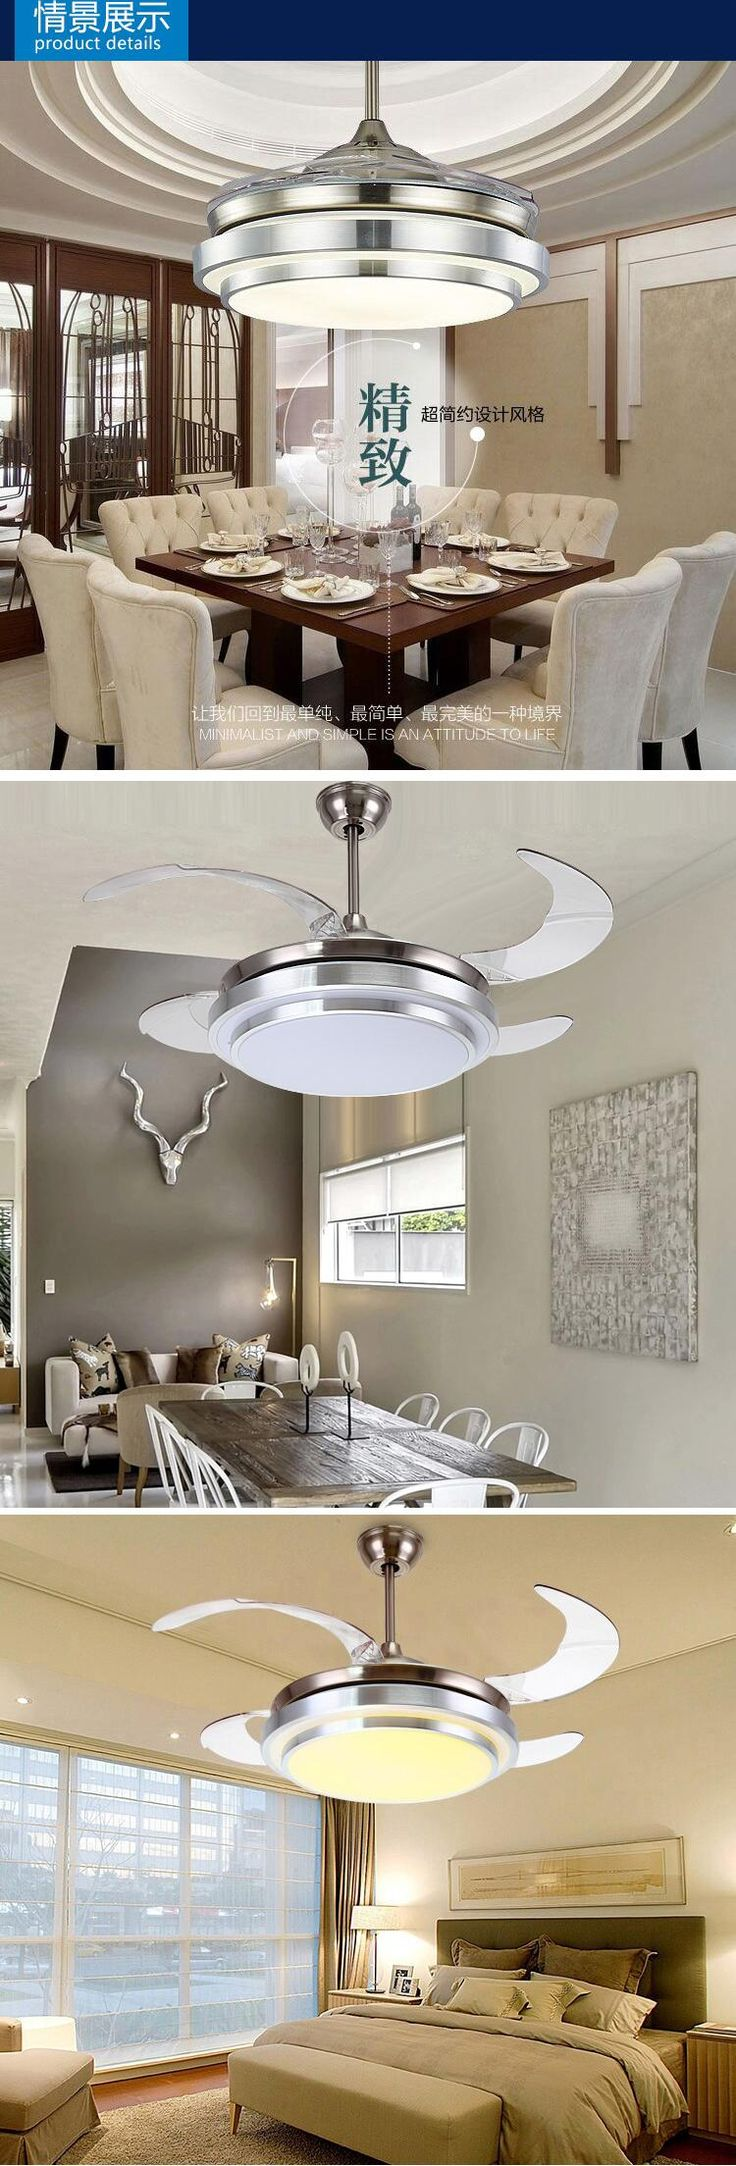 17 Best Ideas About Quiet Ceiling Fans On Pinterest Ceiling Fan Chandelier